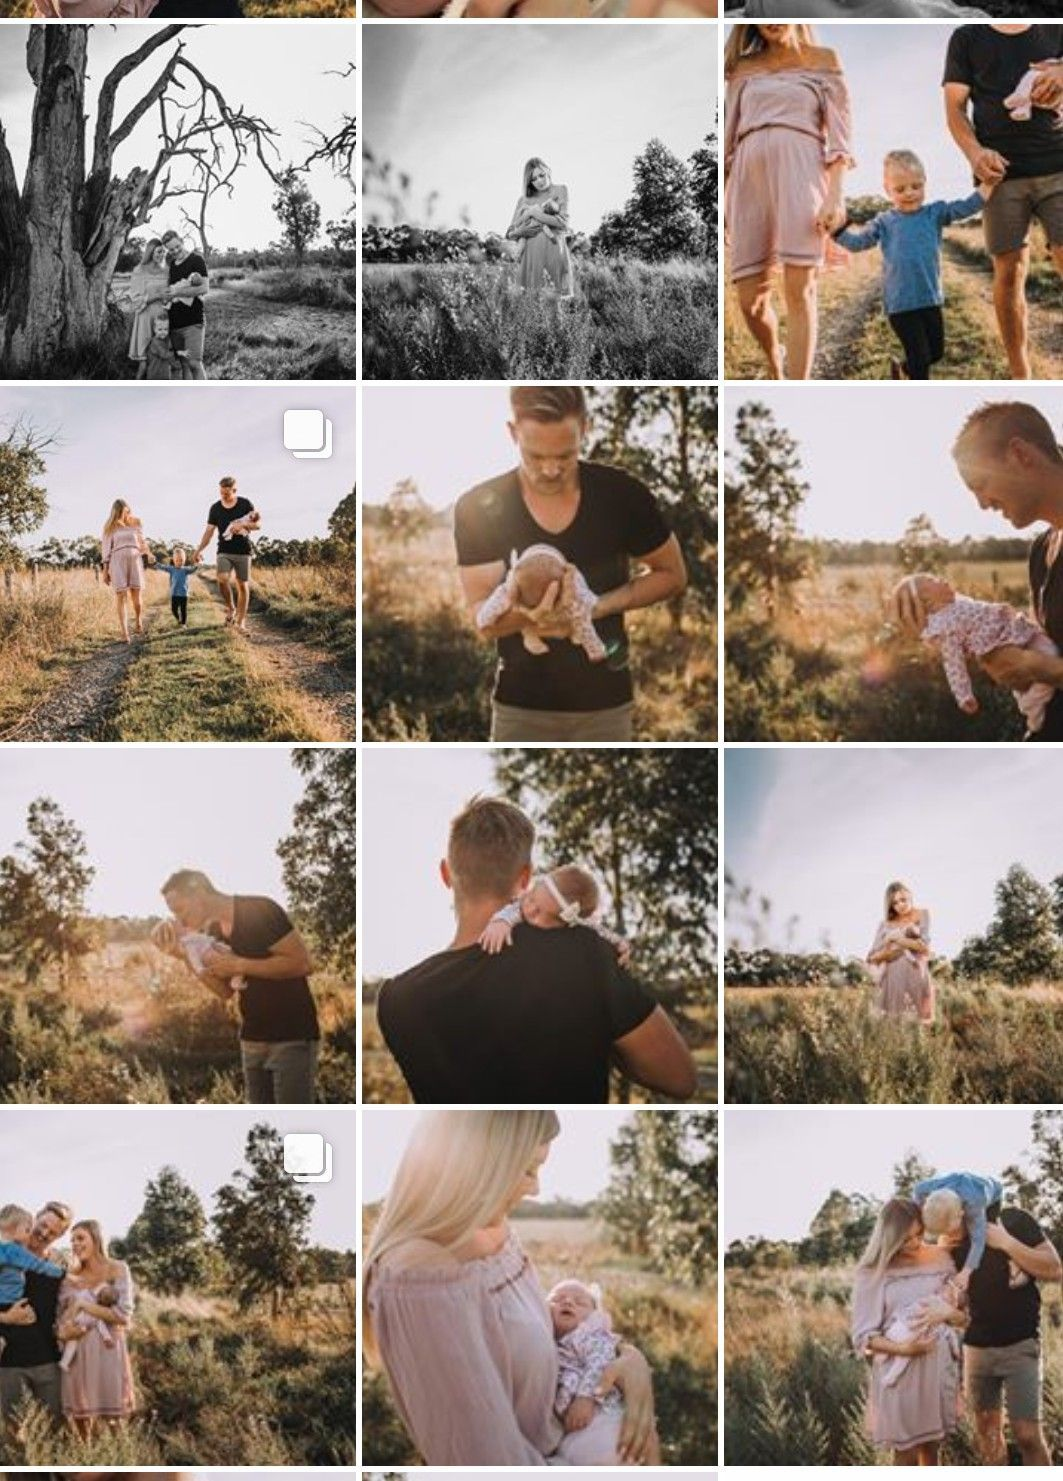 Outdoor Newborn Photography Family + Outdoor Newborn Photography Family